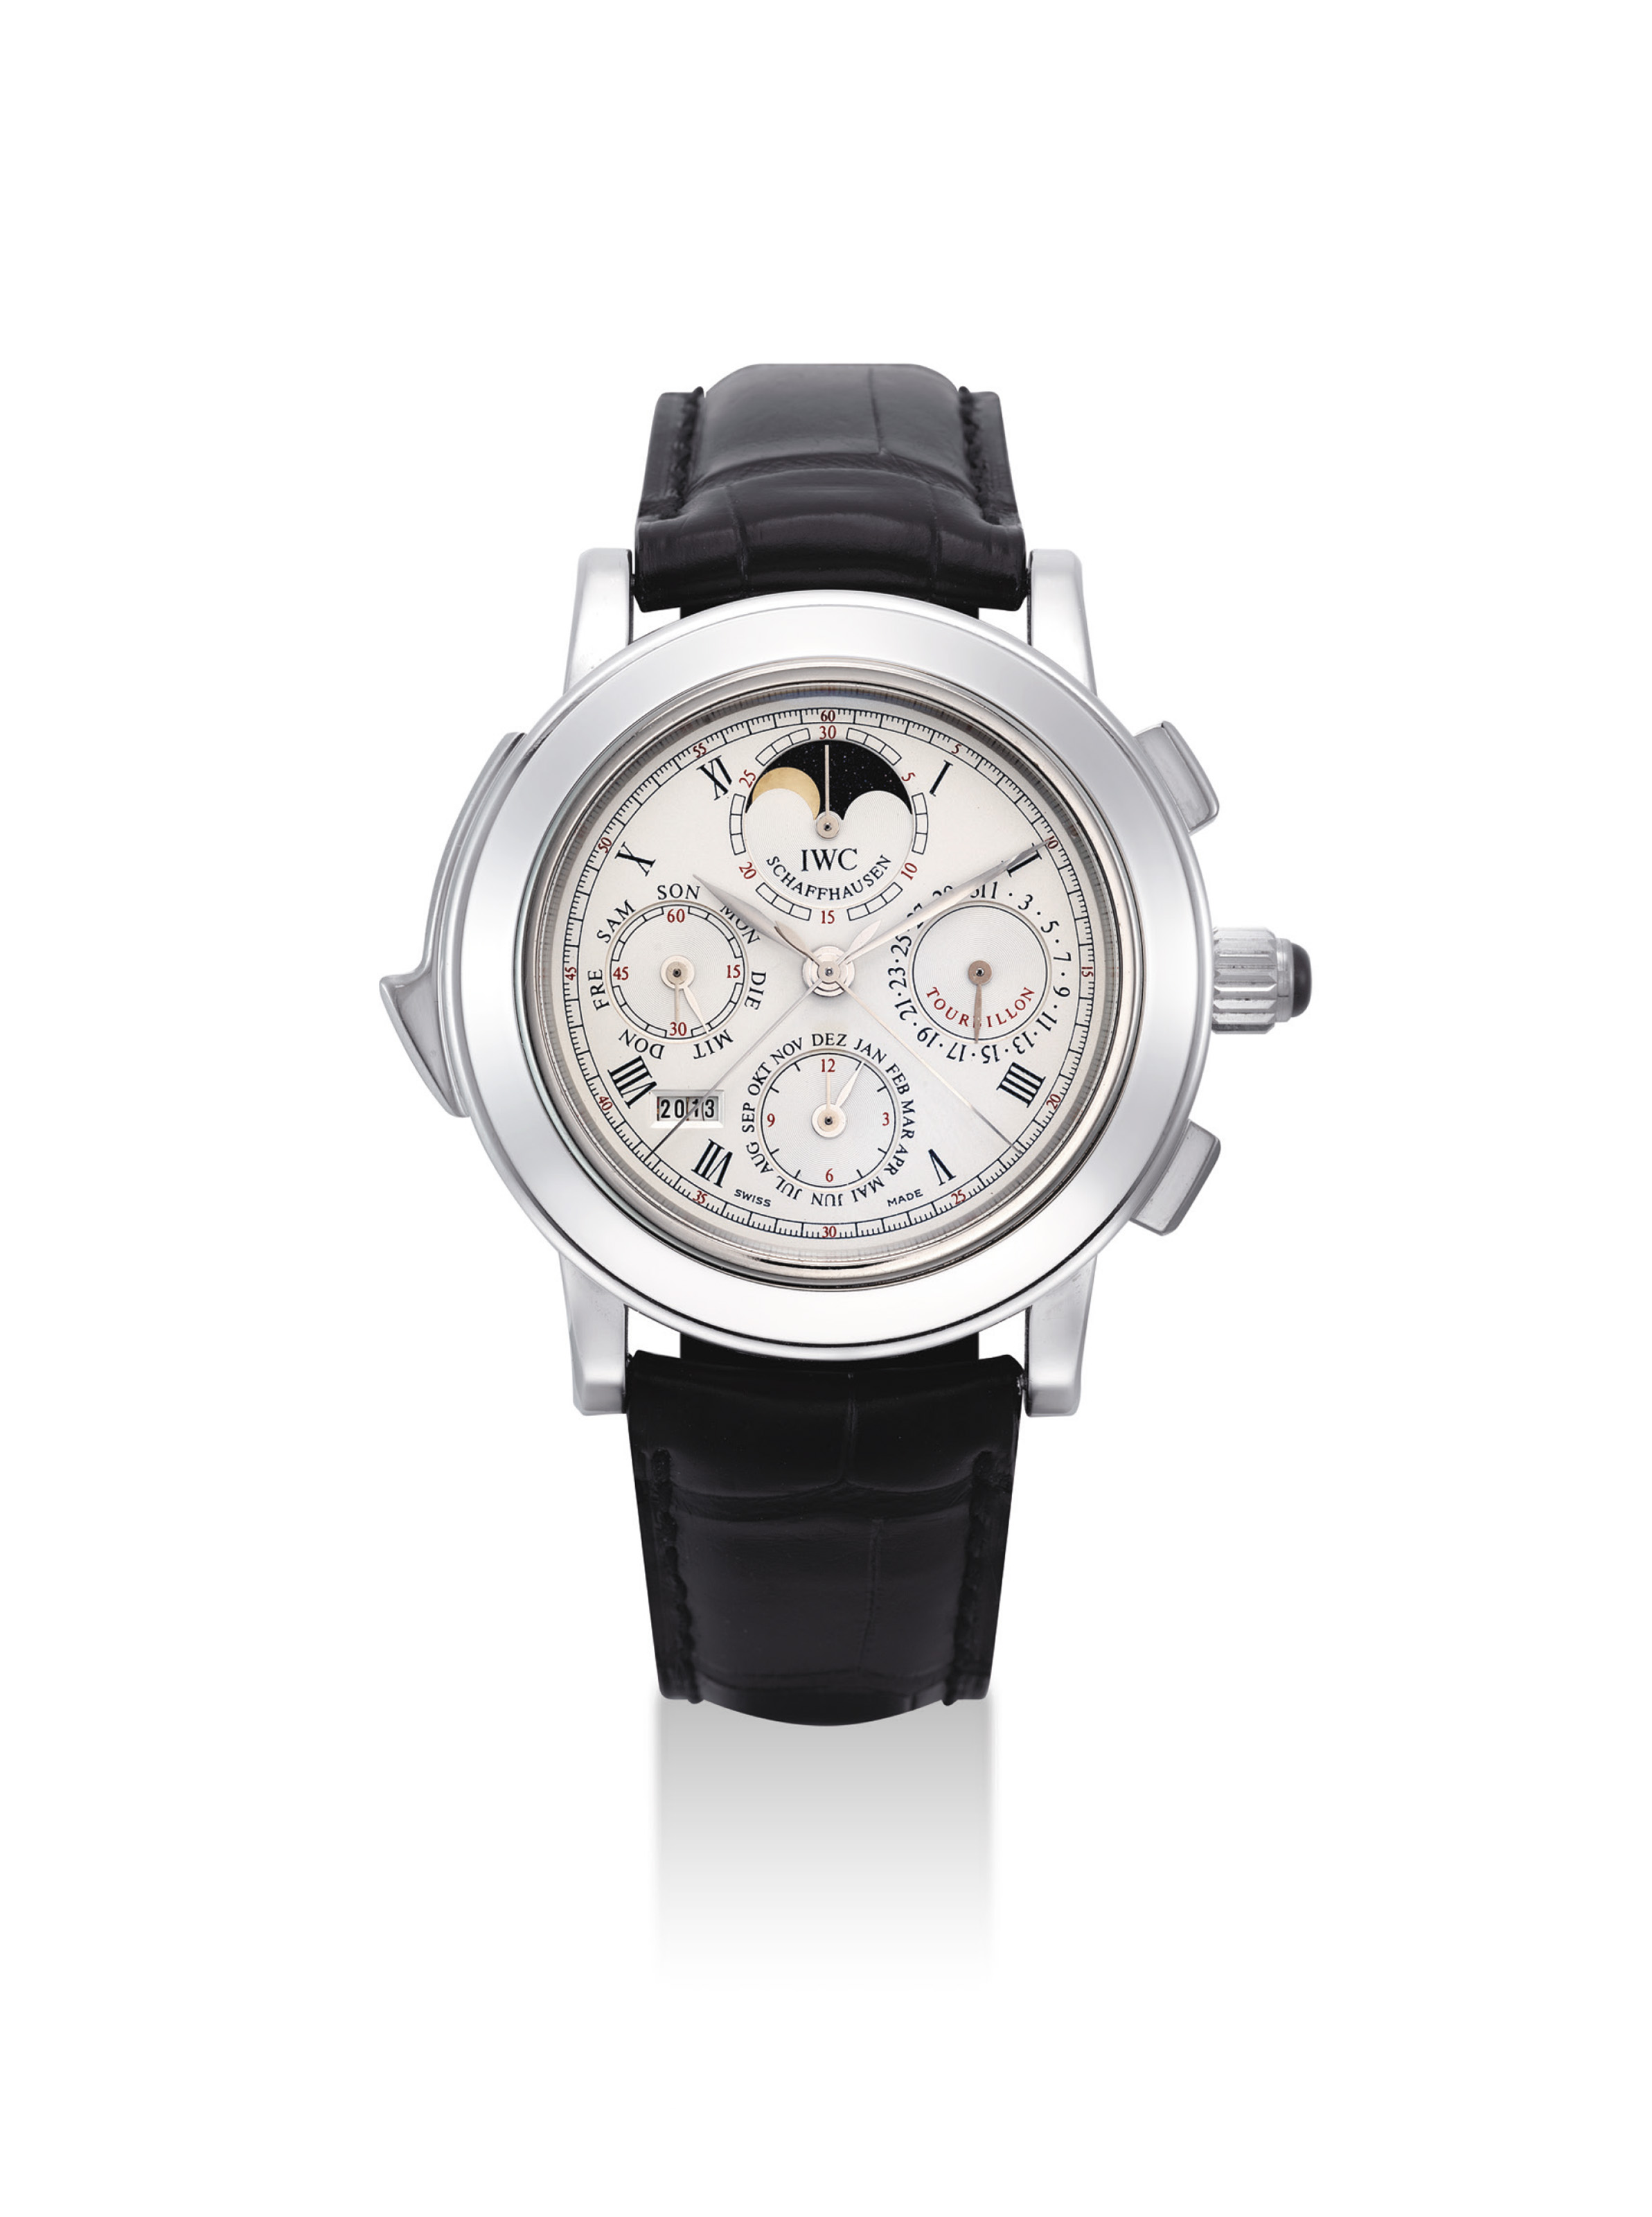 IWC. AN IMPORTANT, VERY RARE AND FINE PLATINUM LIMITED EDITION MINUTE REPEATING PERPETUAL CALENDAR SPLIT SECONDS CHRONOGRAPH TOURBILLON WRISTWATCH WITH MOON PHASES AND DIGIT YEAR DISPLAY, MADE TO COMMEMORATE THE 125TH ANNIVERSARY OF IWC SCHAFFHAUSEN